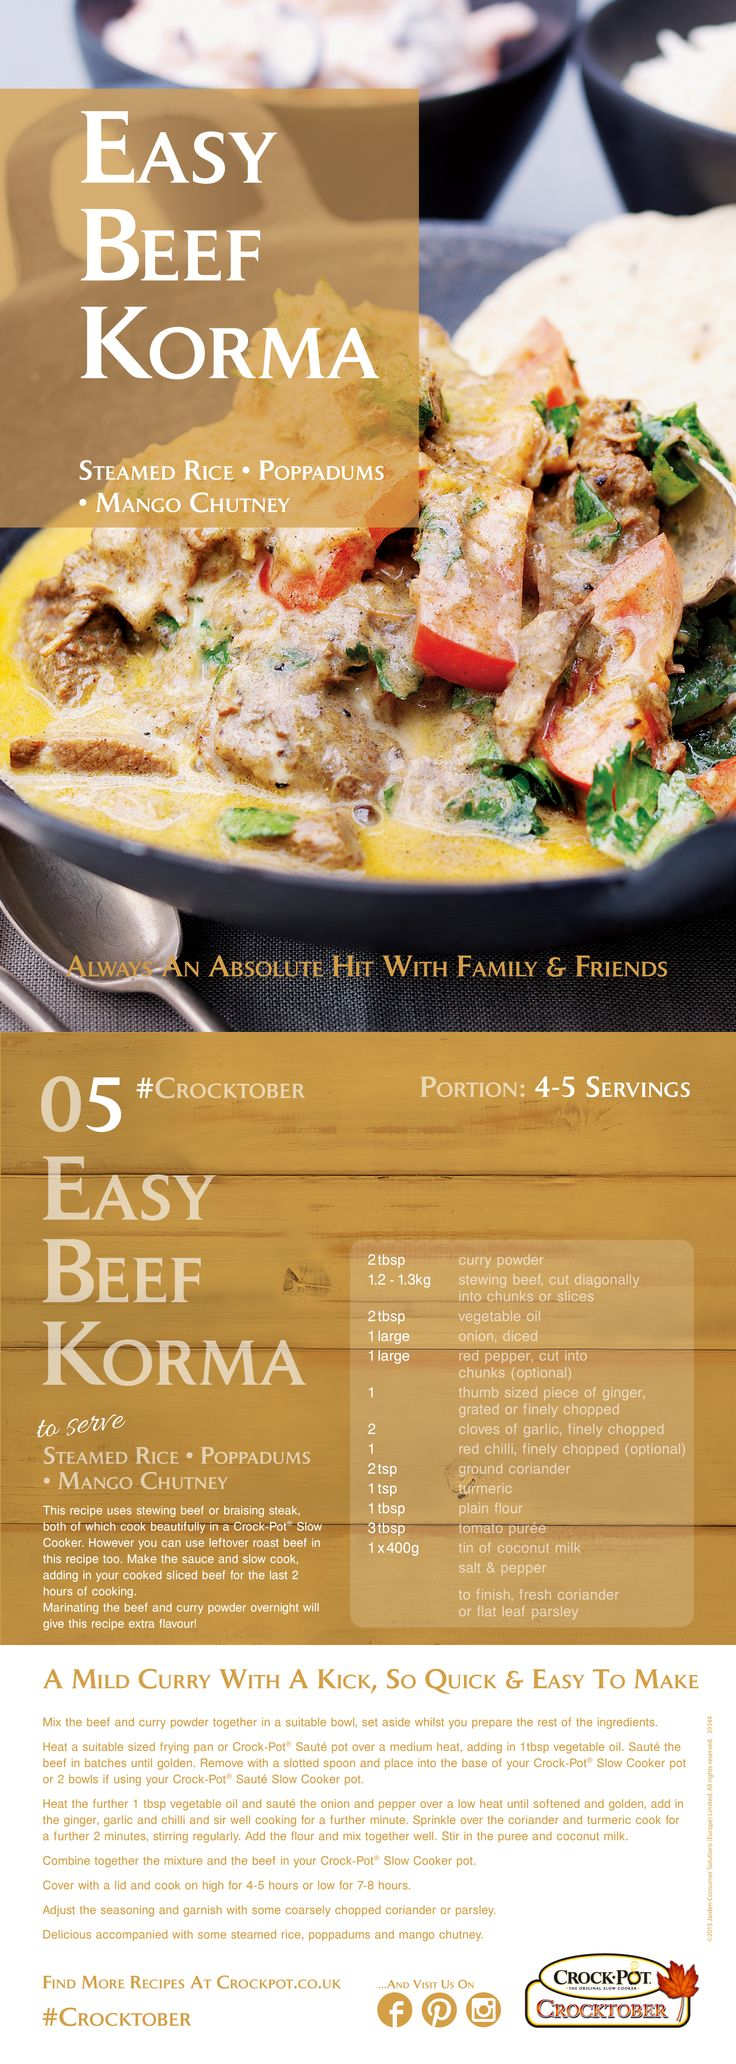 Easy Indian Beef Korma Curry in a Crock-Pot Slow COoker, an absolute hit with family and friends and so easy to make! Serves 4-5.